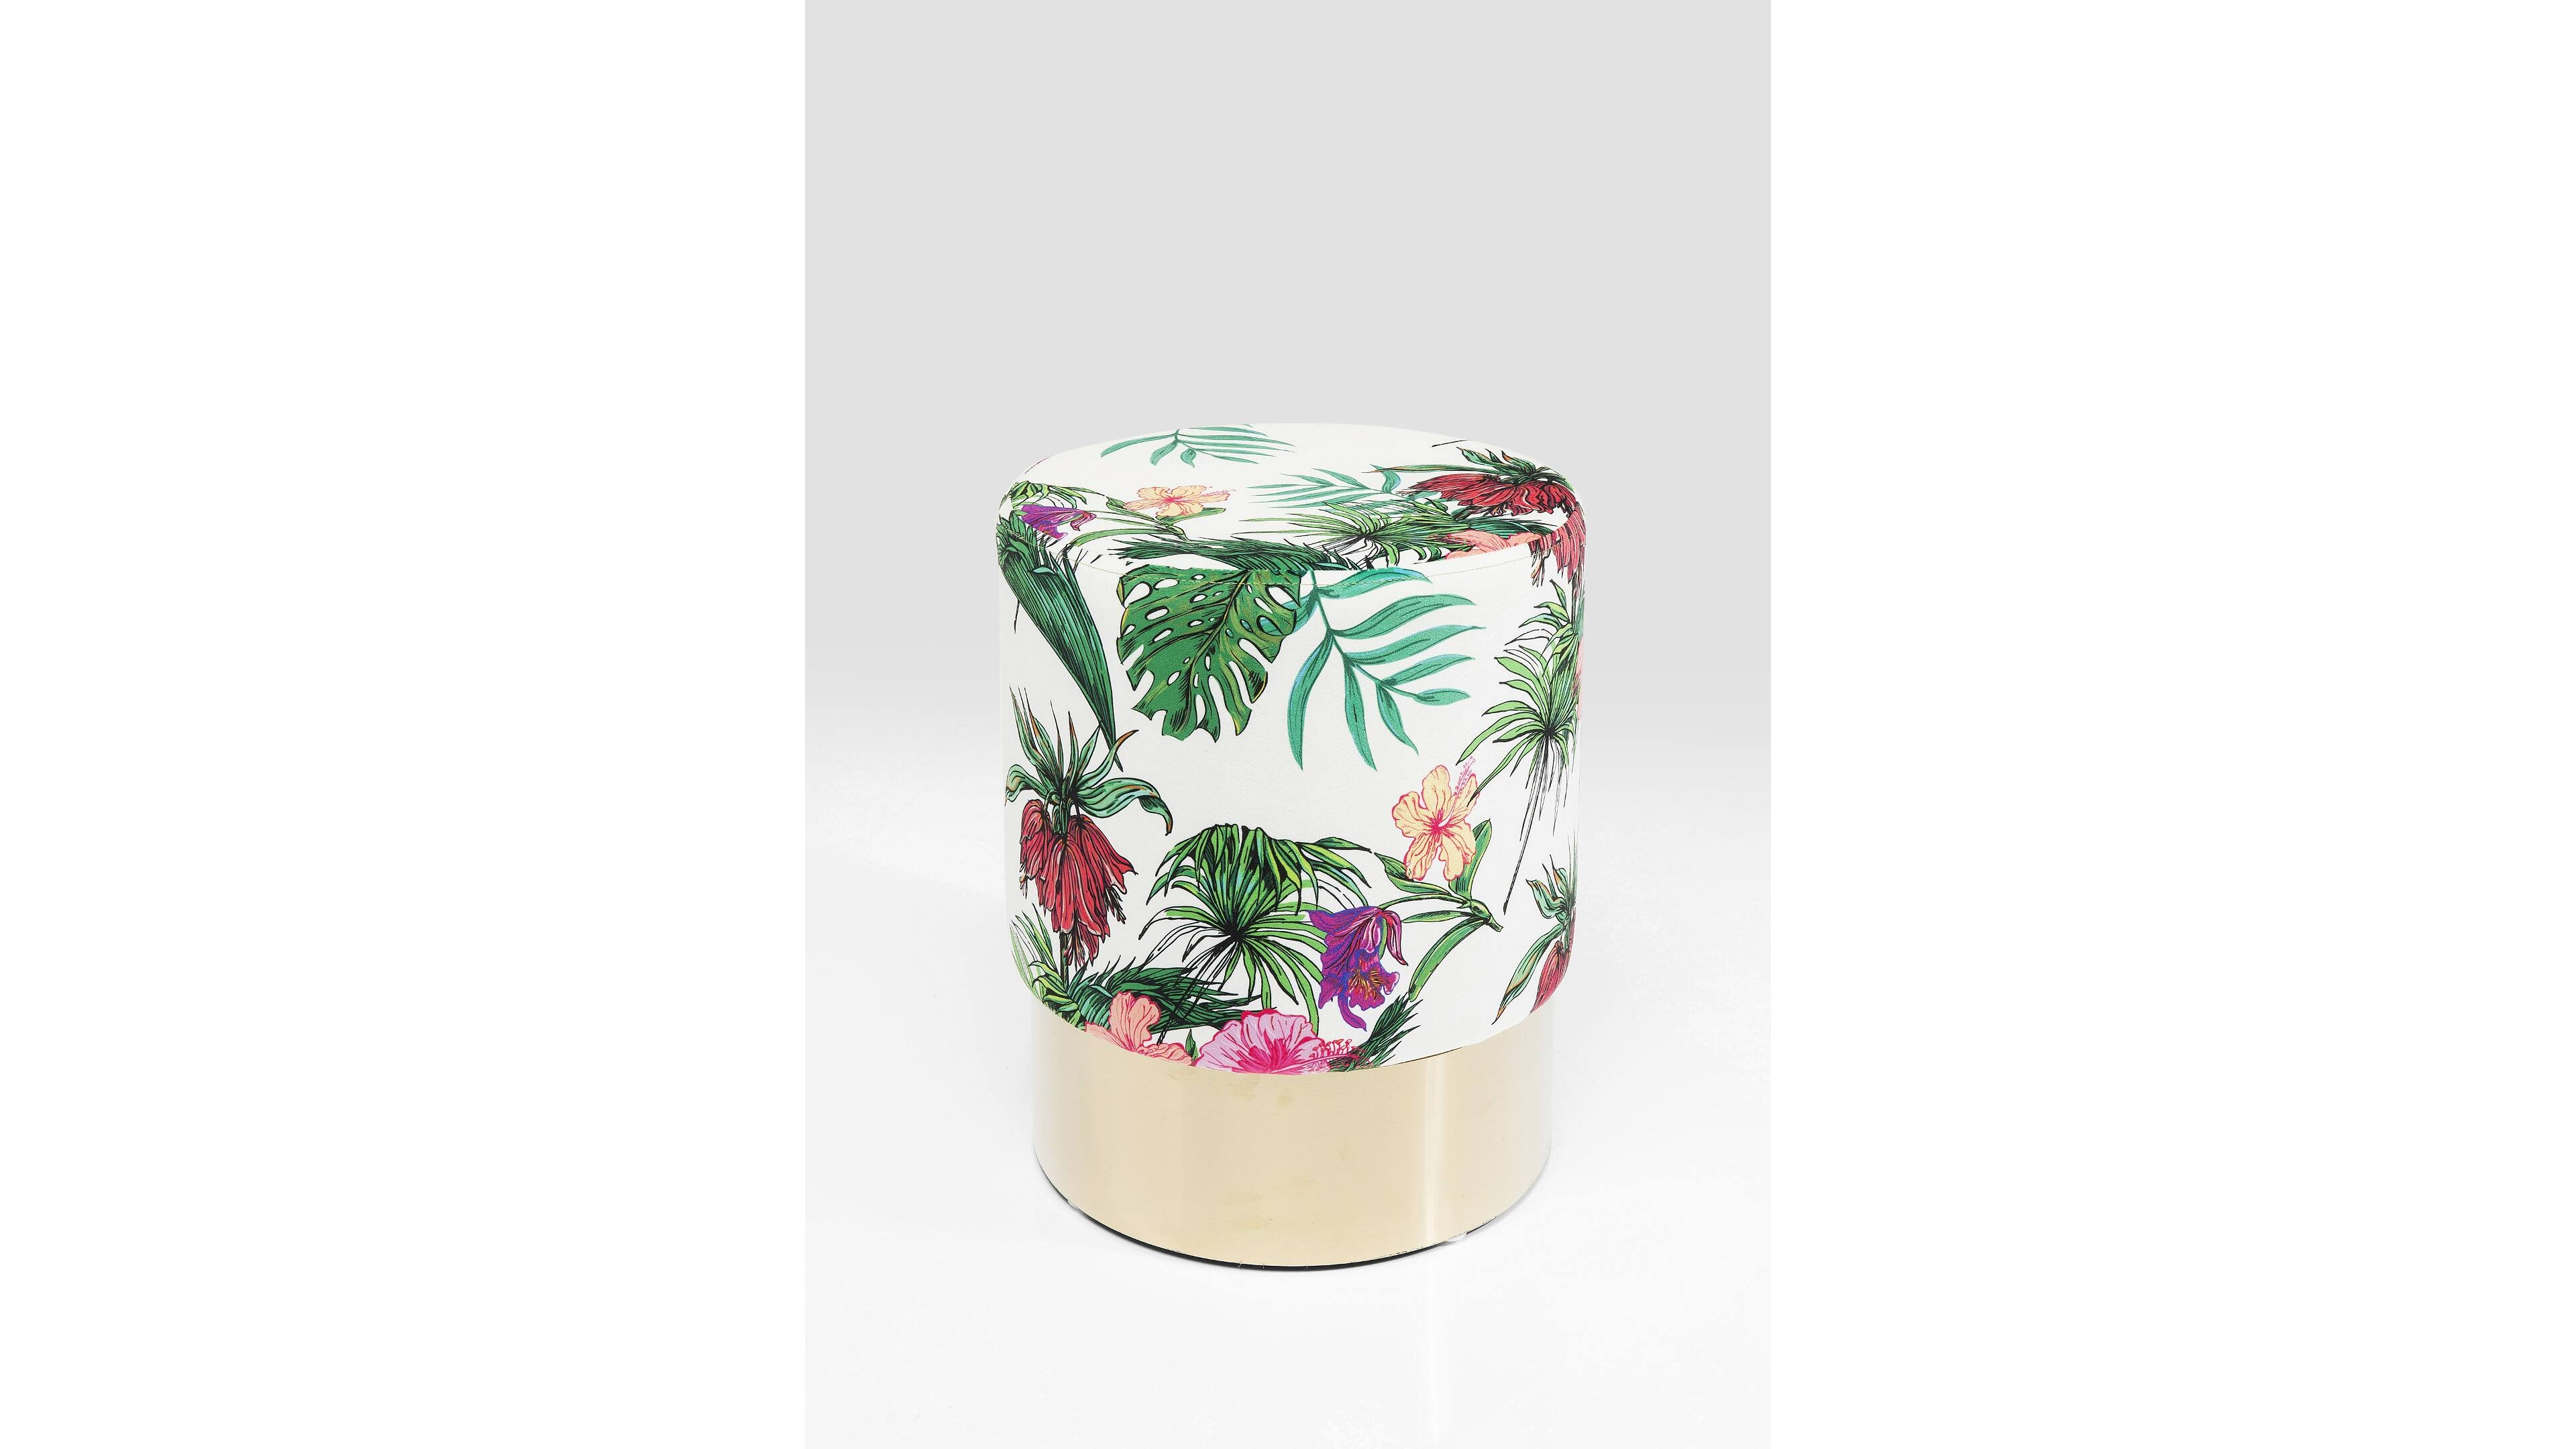 Hocker Cherry Messingfarben Jungle, Messing